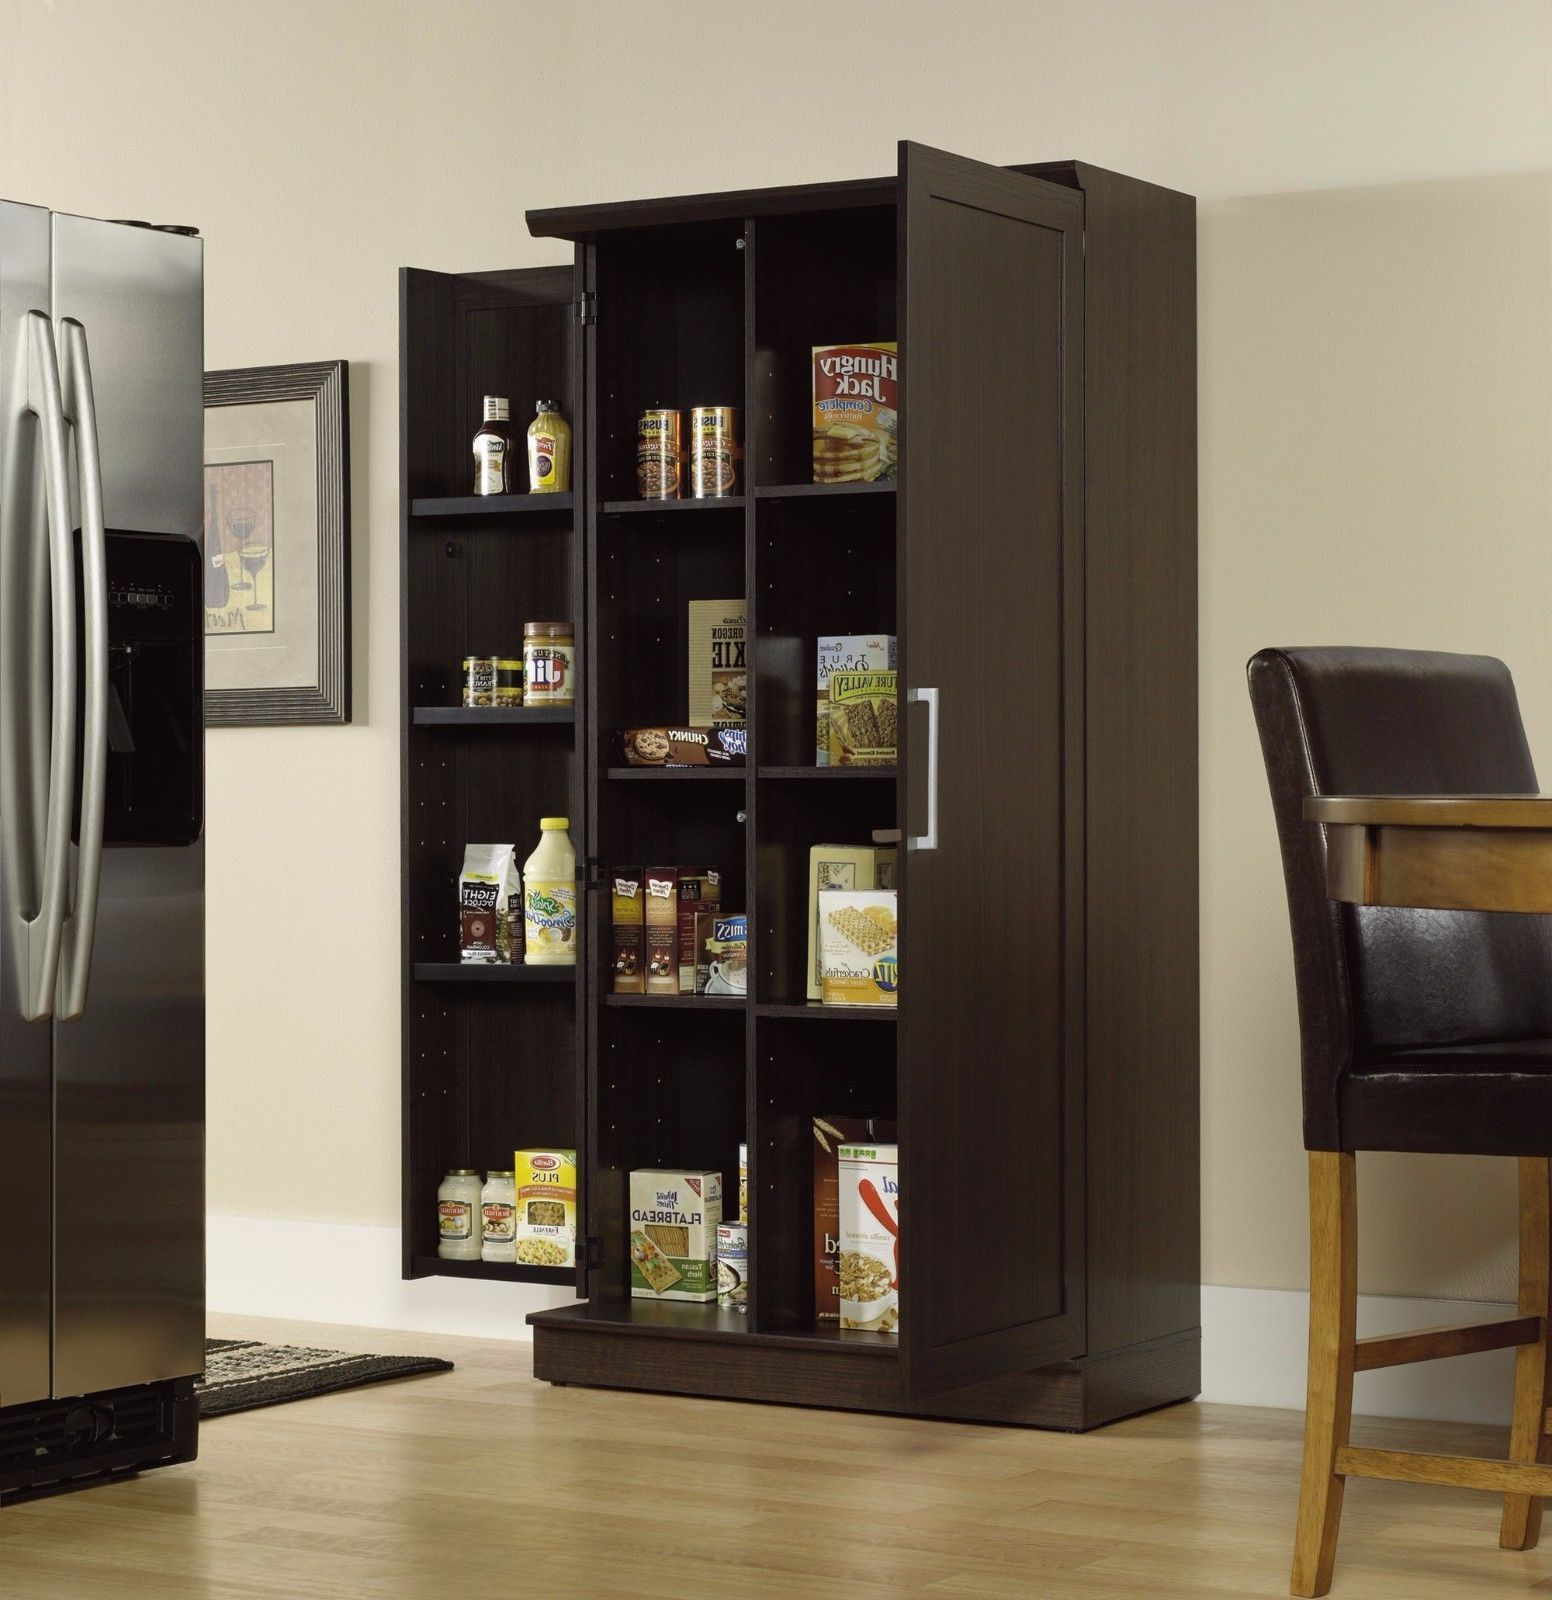 Tall Pantry Storage Cabinet Kitchen Organizer Food Shelves Closet Home Furniture 1